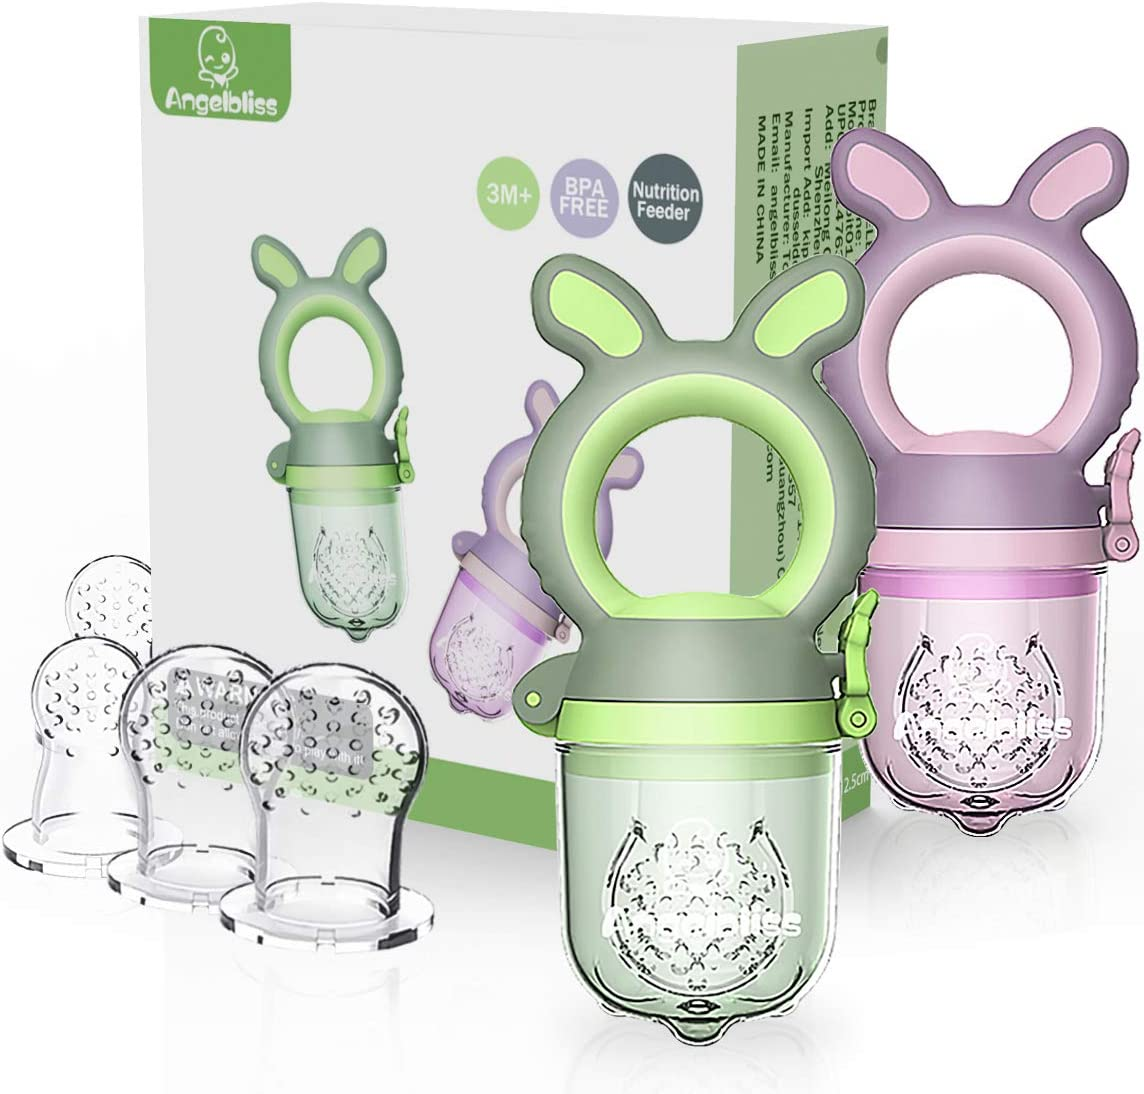 ANGELBLISS Baby Food Feeder Pacifier,Organic/Fresh Food Feeder for 3-24 Months Infant&Newborn&Toddlers Weaning ,6 Silicone Sac (Green/Purple 2 Pack) ...